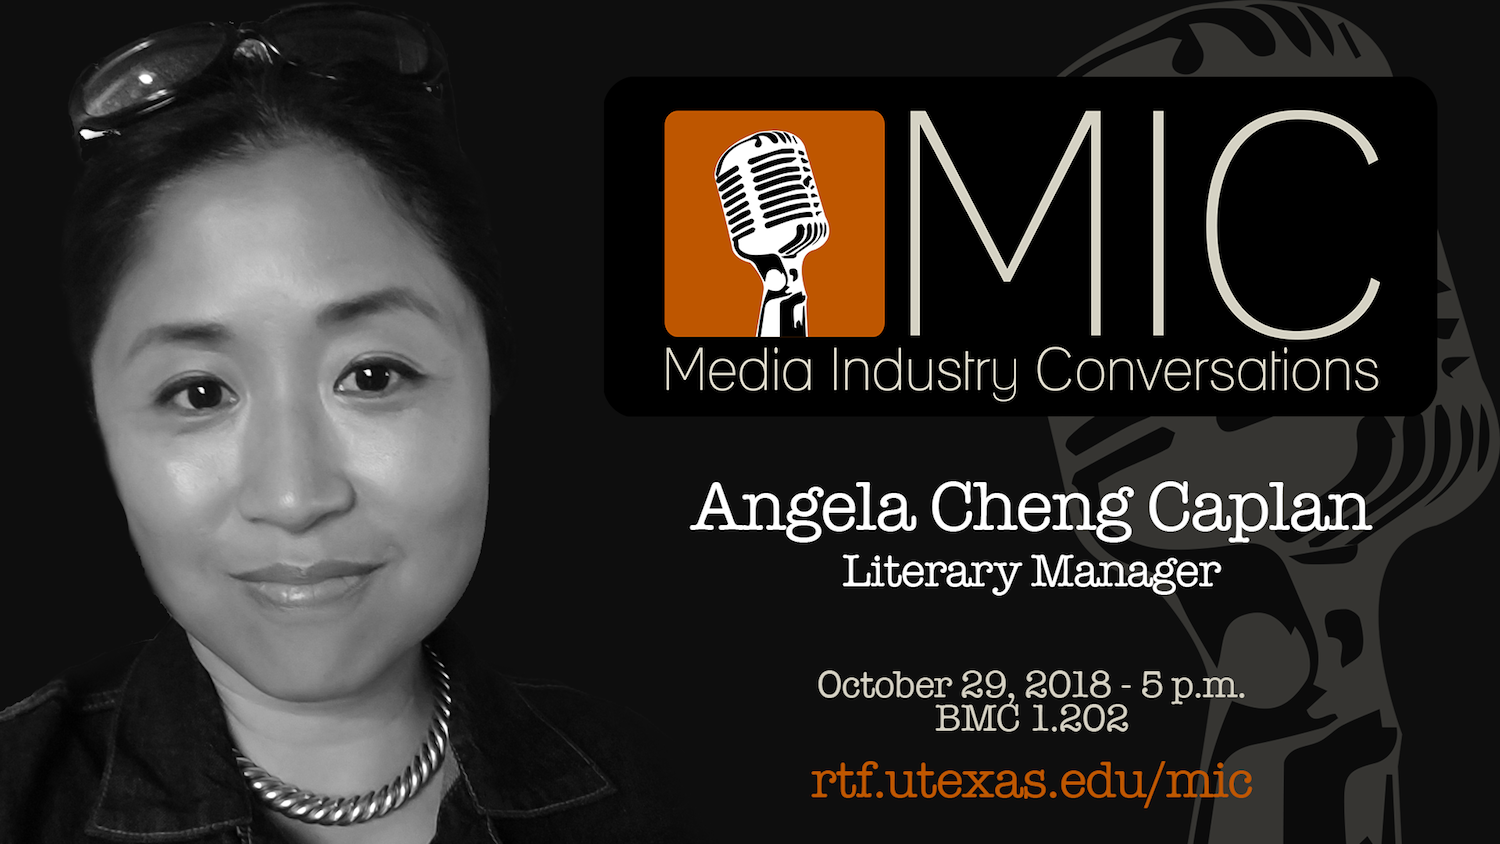 angela_cheng_caplan_MIC_talk_october_29_2018_5pm_BMC_1.202